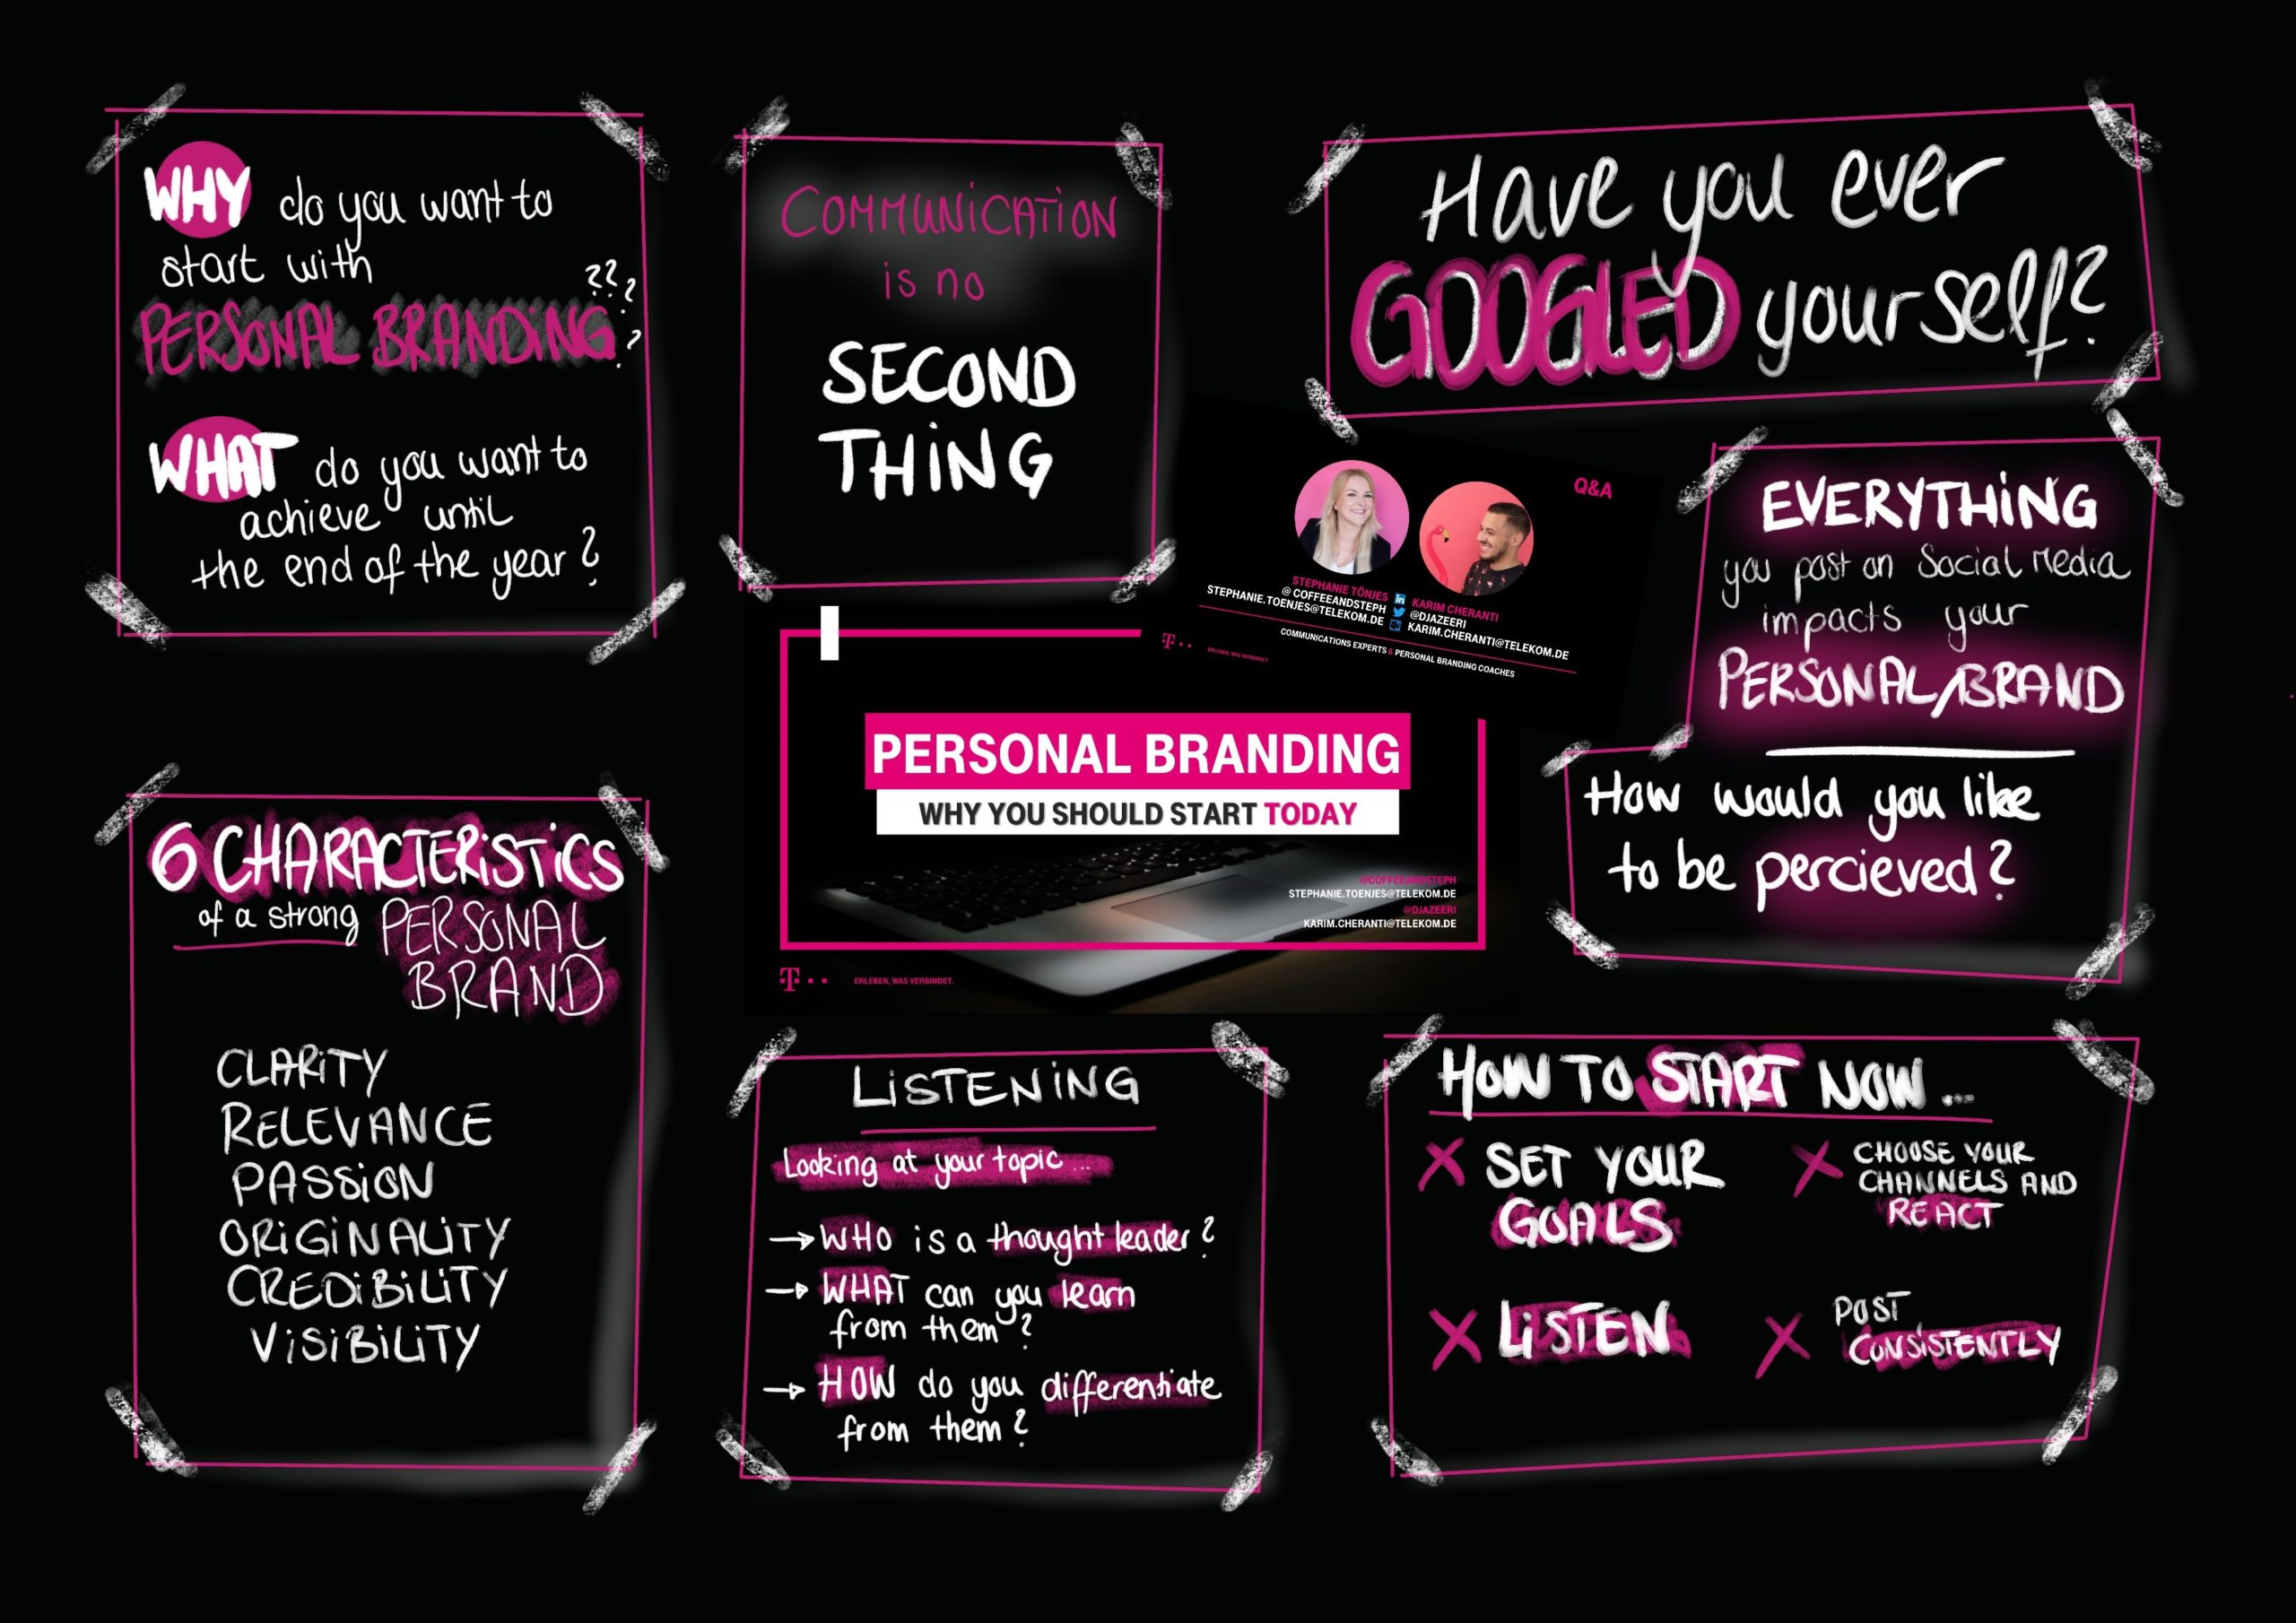 Skecthnote about Personal Branding Presentation at imc